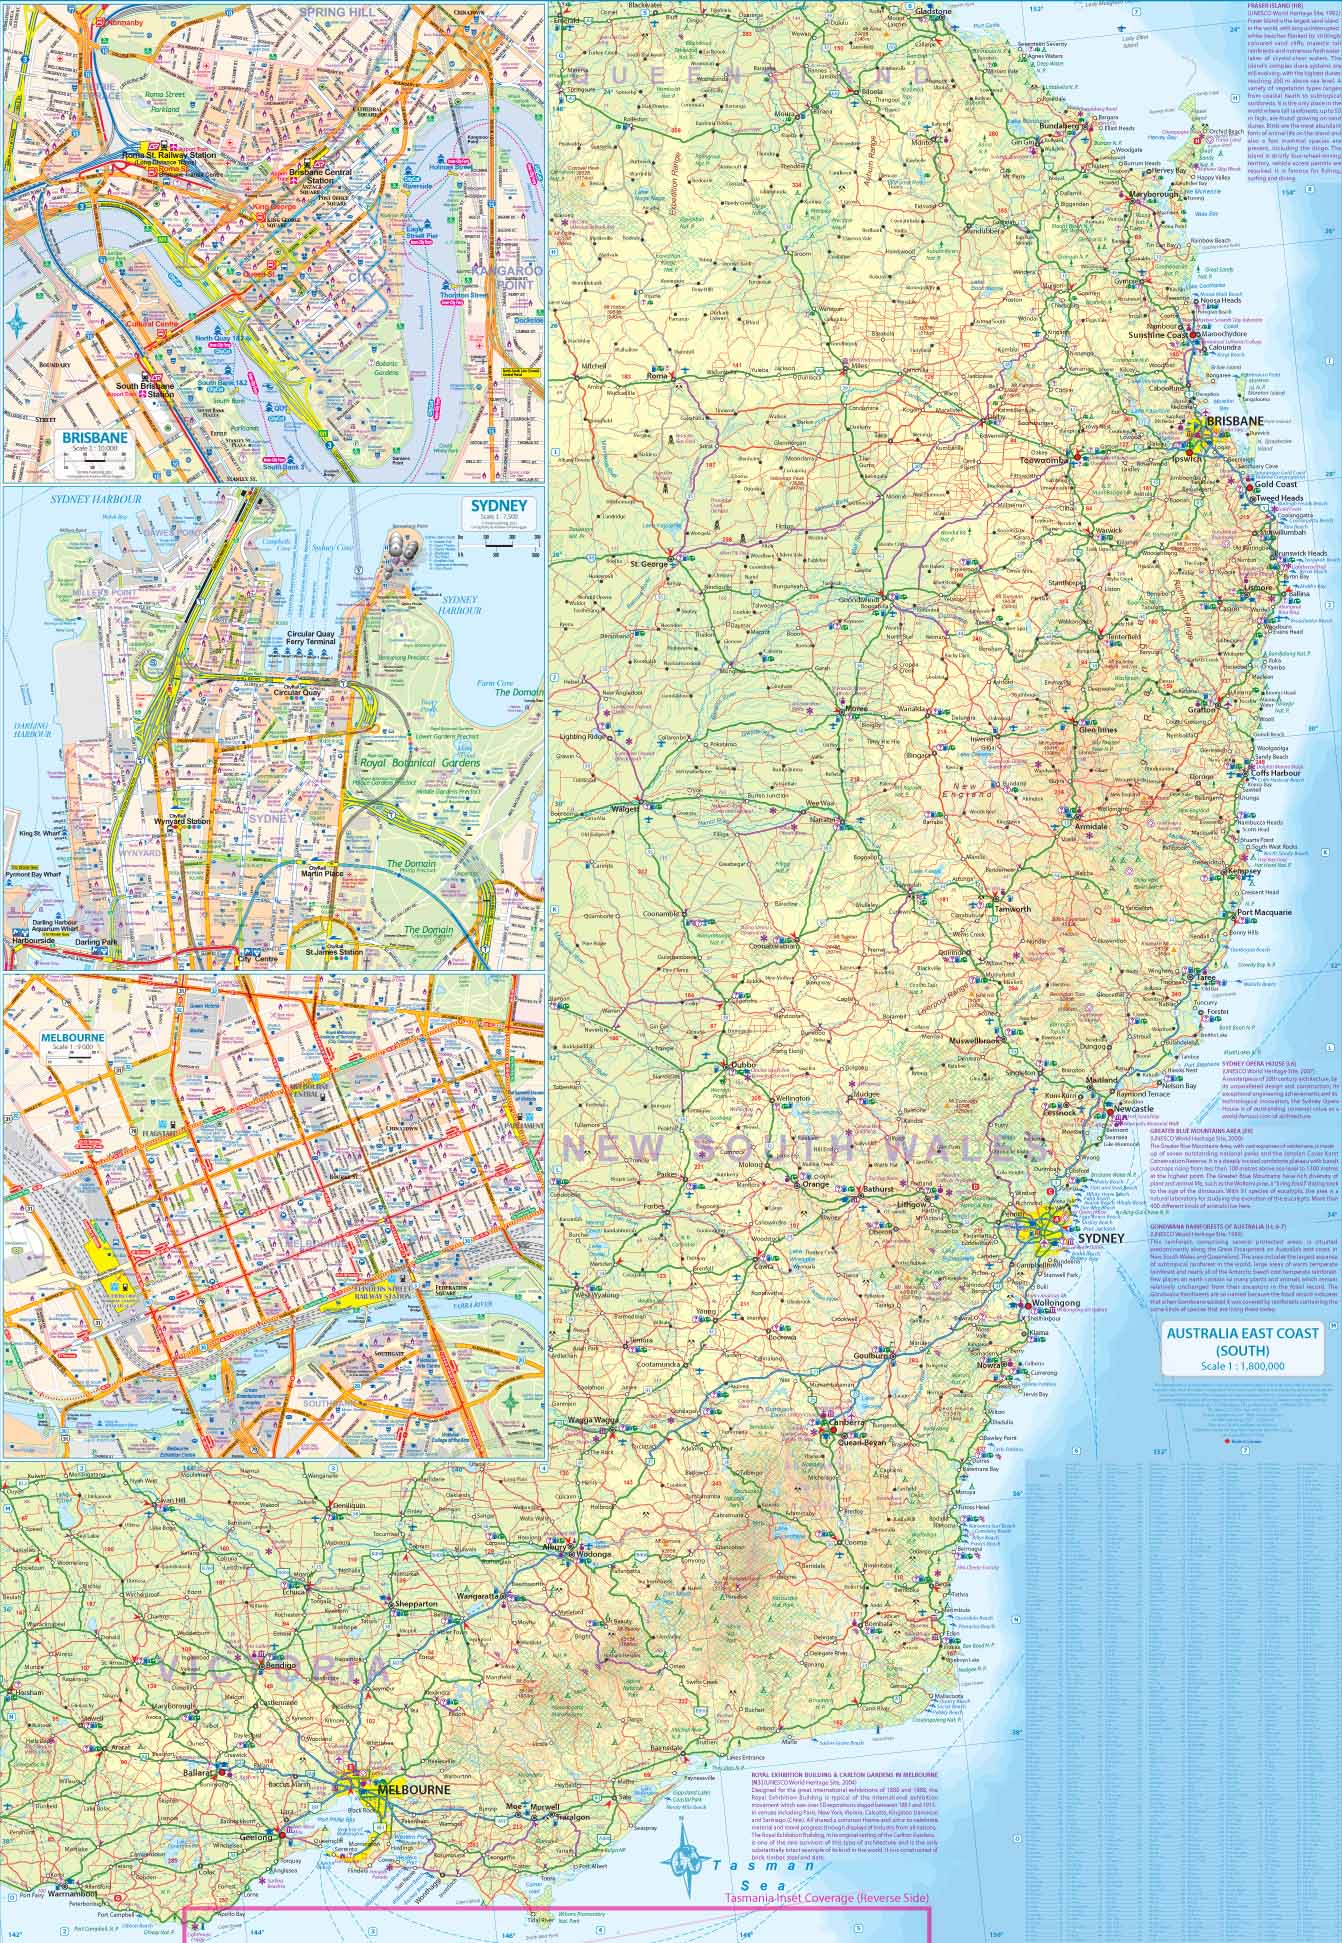 Maps for travel, City Maps, Road Maps, Guides, Globes ... Printable Map Of Norway Scales on flag of norway, only map of norway, major physical features in norway, regional map of norway, oslo norway, globe showing norway, transportation of norway, topographical map of norway, 5 major cities in norway, map of denmark and norway, large map of norway, detailed map of norway, just maps of norway, google map of norway, ferries of scotland and norway, political map of norway, easy map of norway, map of south norway, green map of norway, outline map of norway,